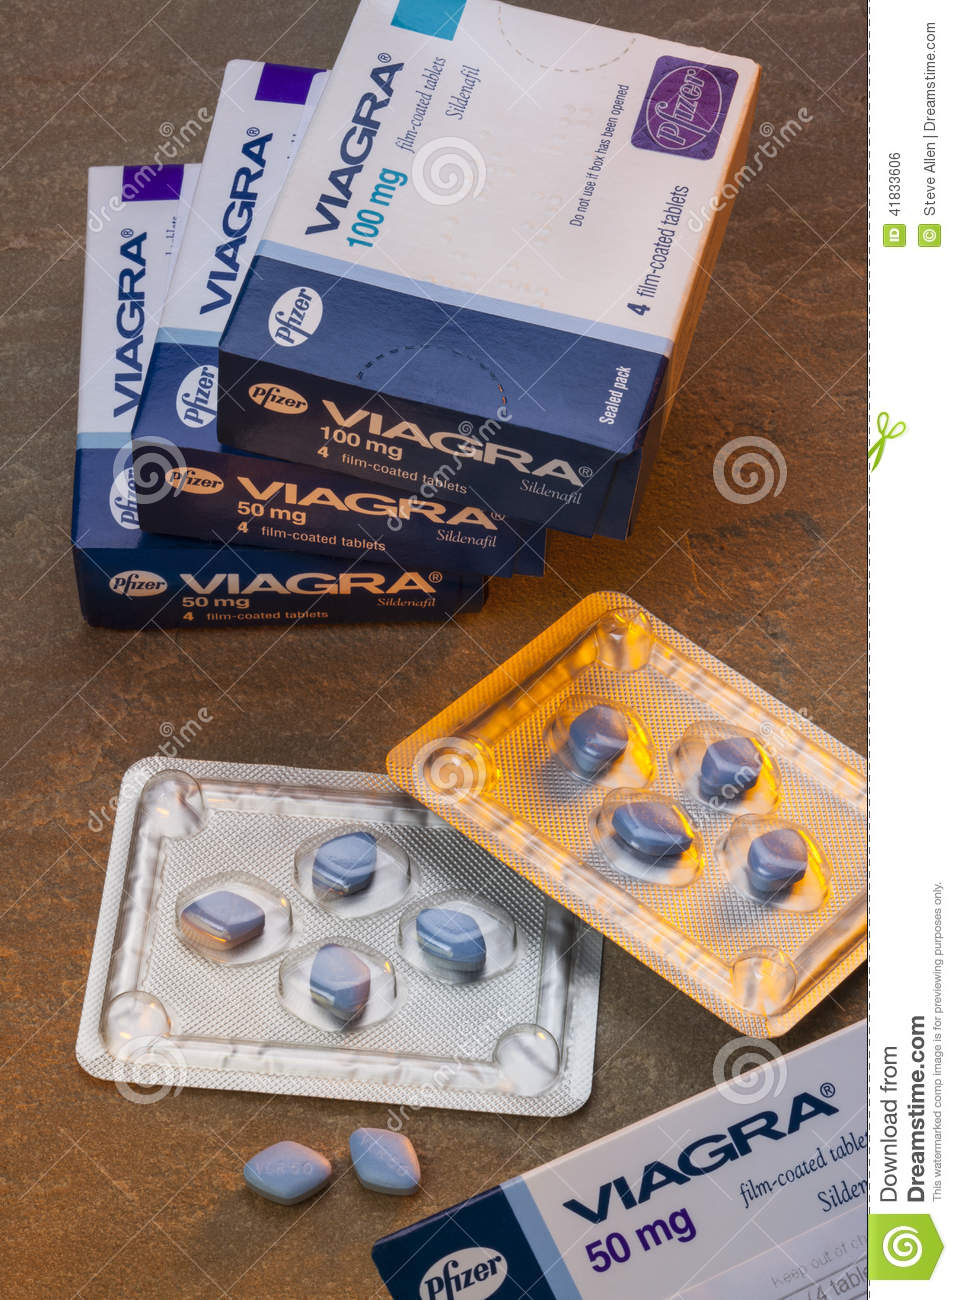 Viagra medication for erection